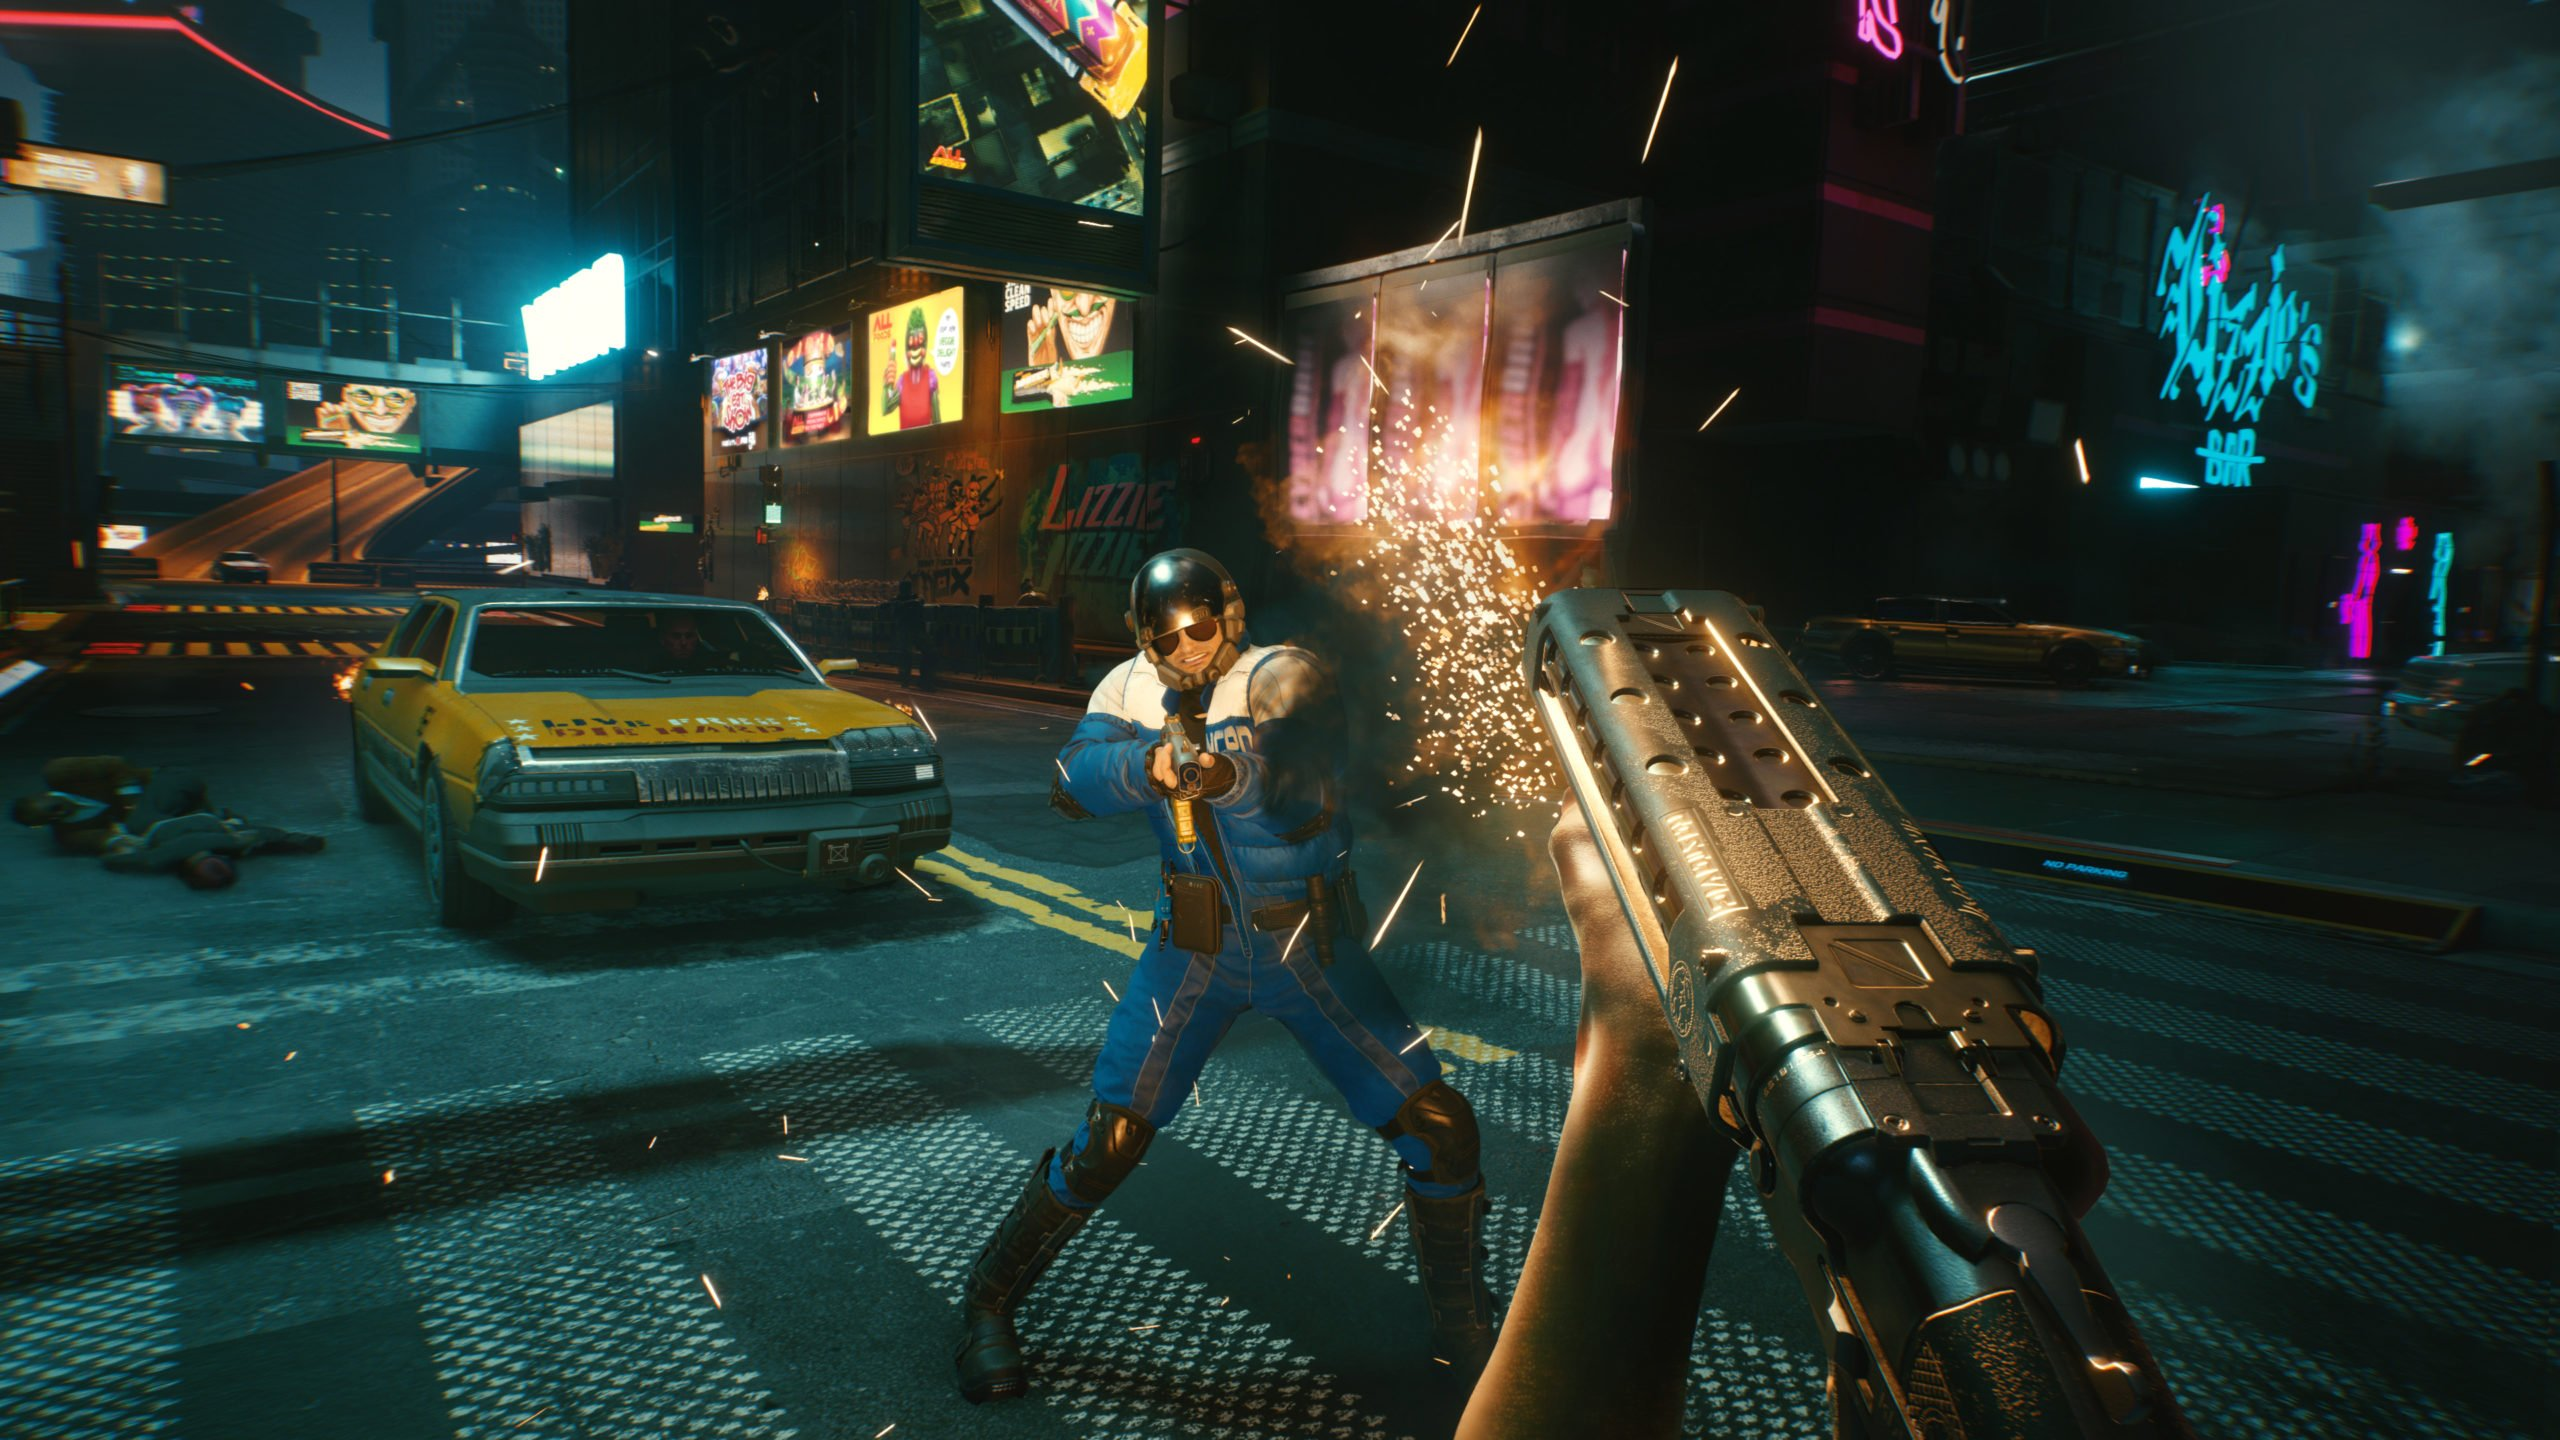 Cyberpunk 2077 is 'preparing to enter certification' and 'won't cost $70 on next-gen' | VGC